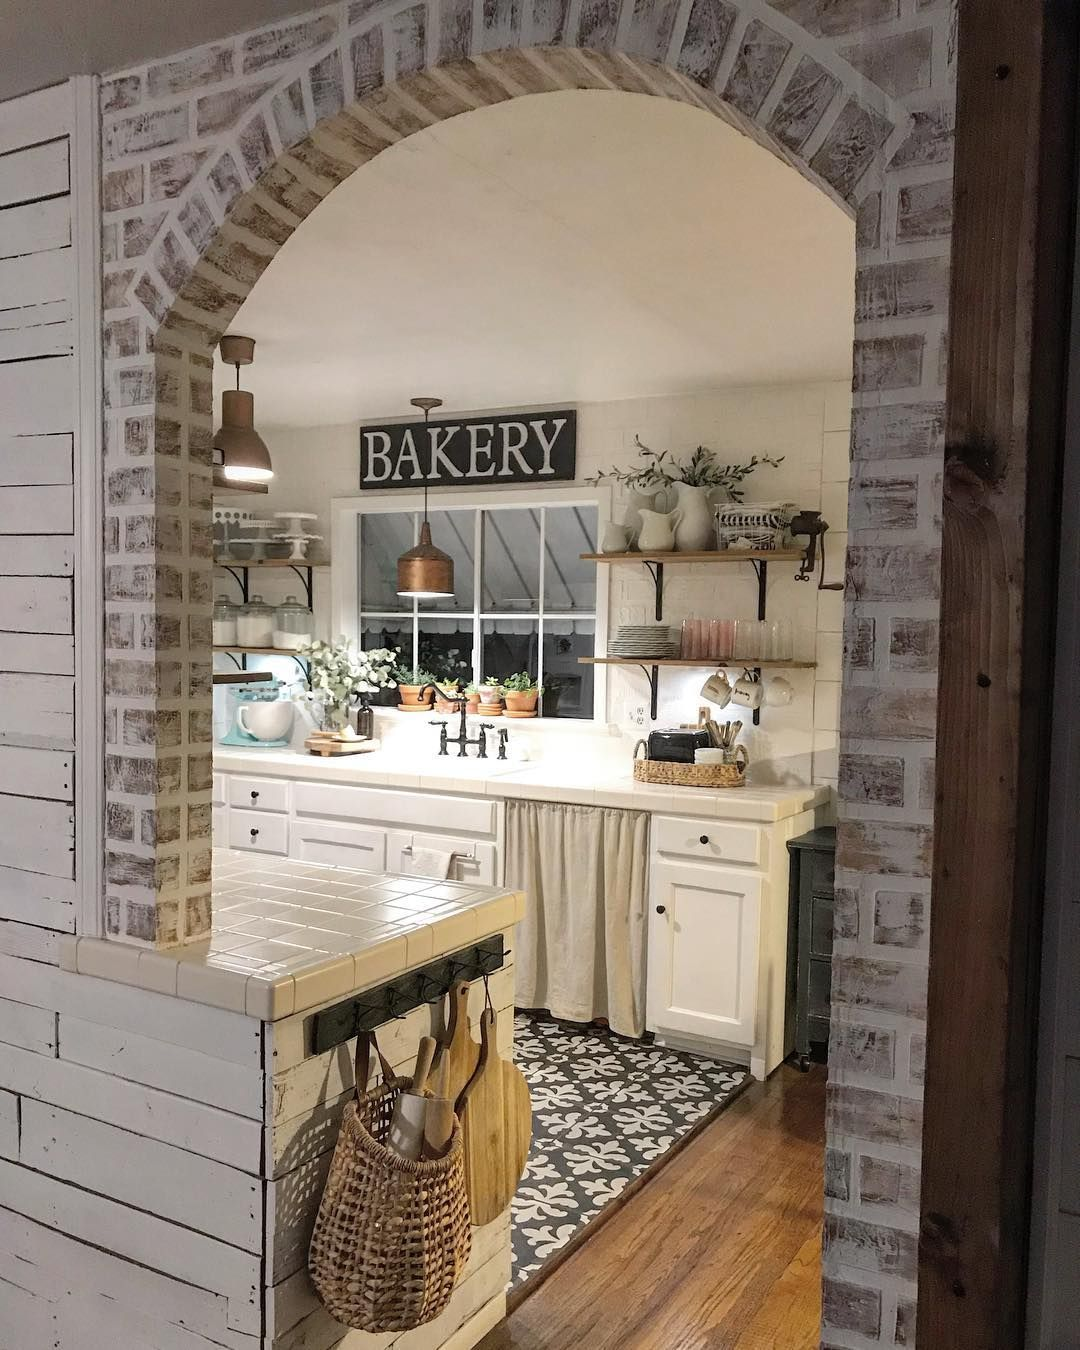 Pin by Hannah Peddy on Dream house   Pinterest   Cucine, Case and ...